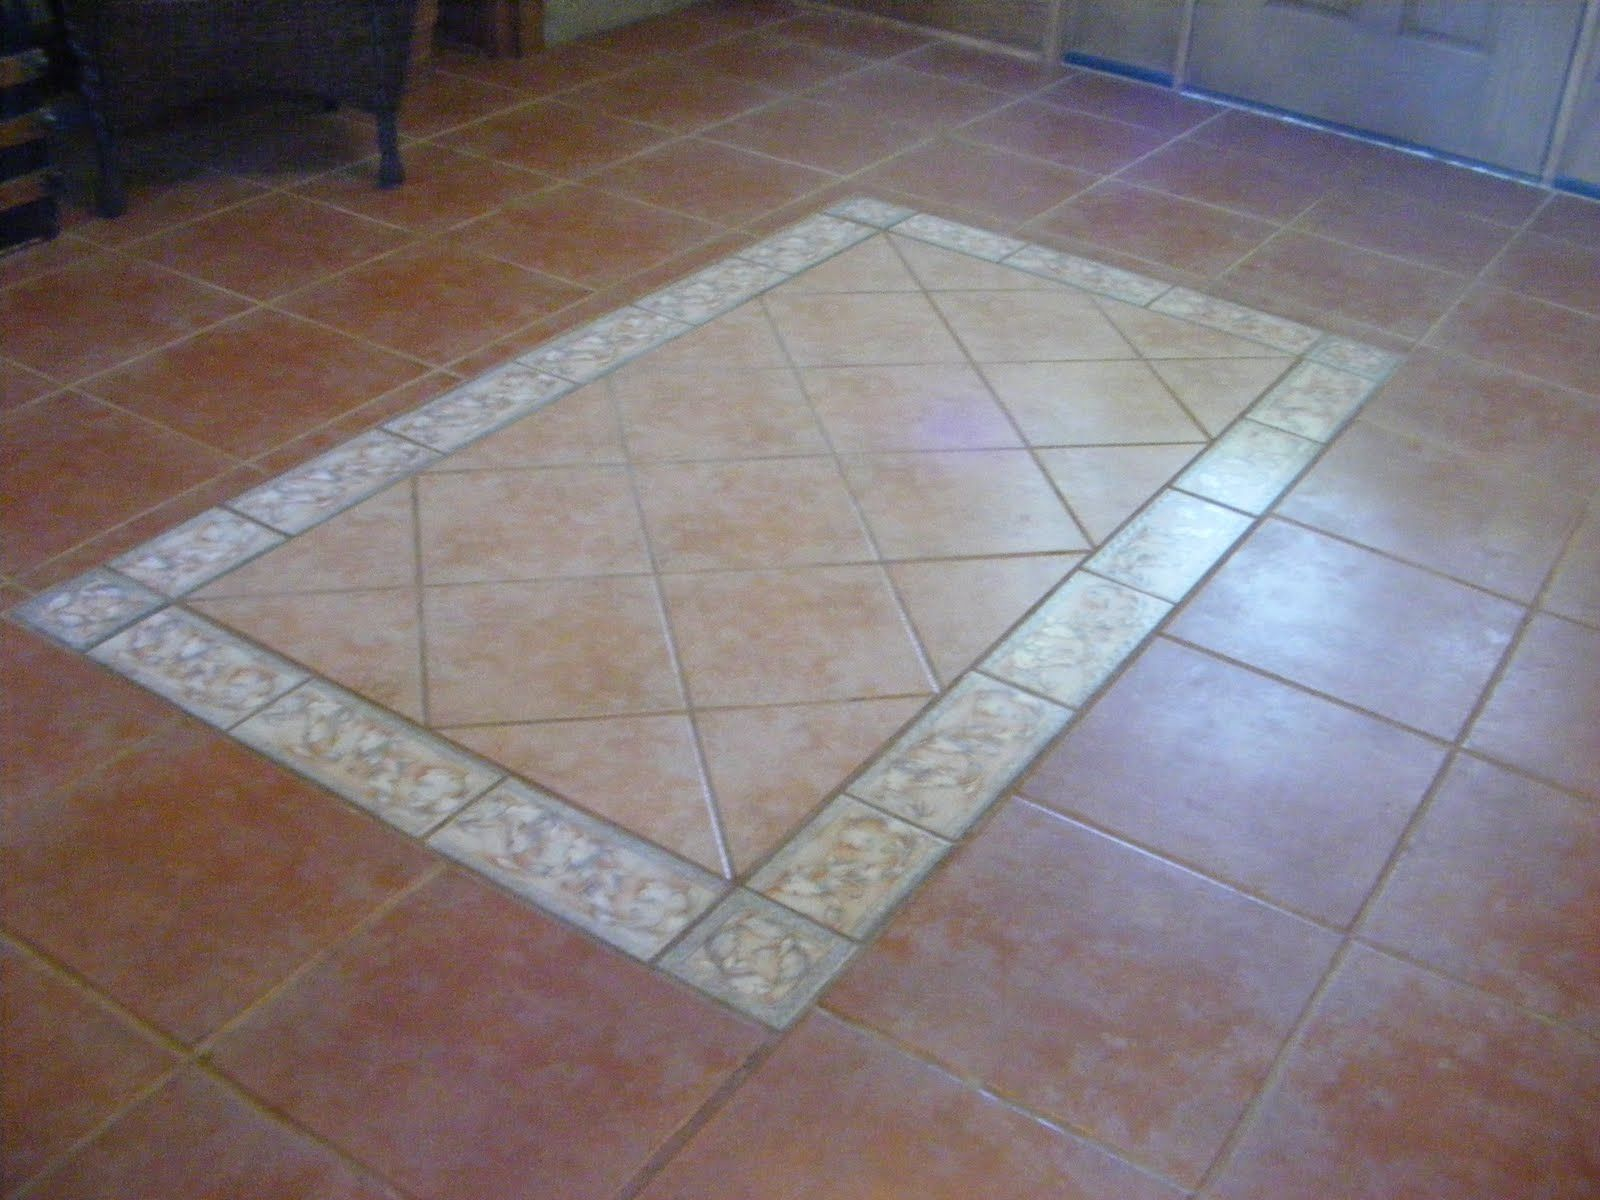 Decoration floor tile design patterns of new inspiration for New floor design ideas